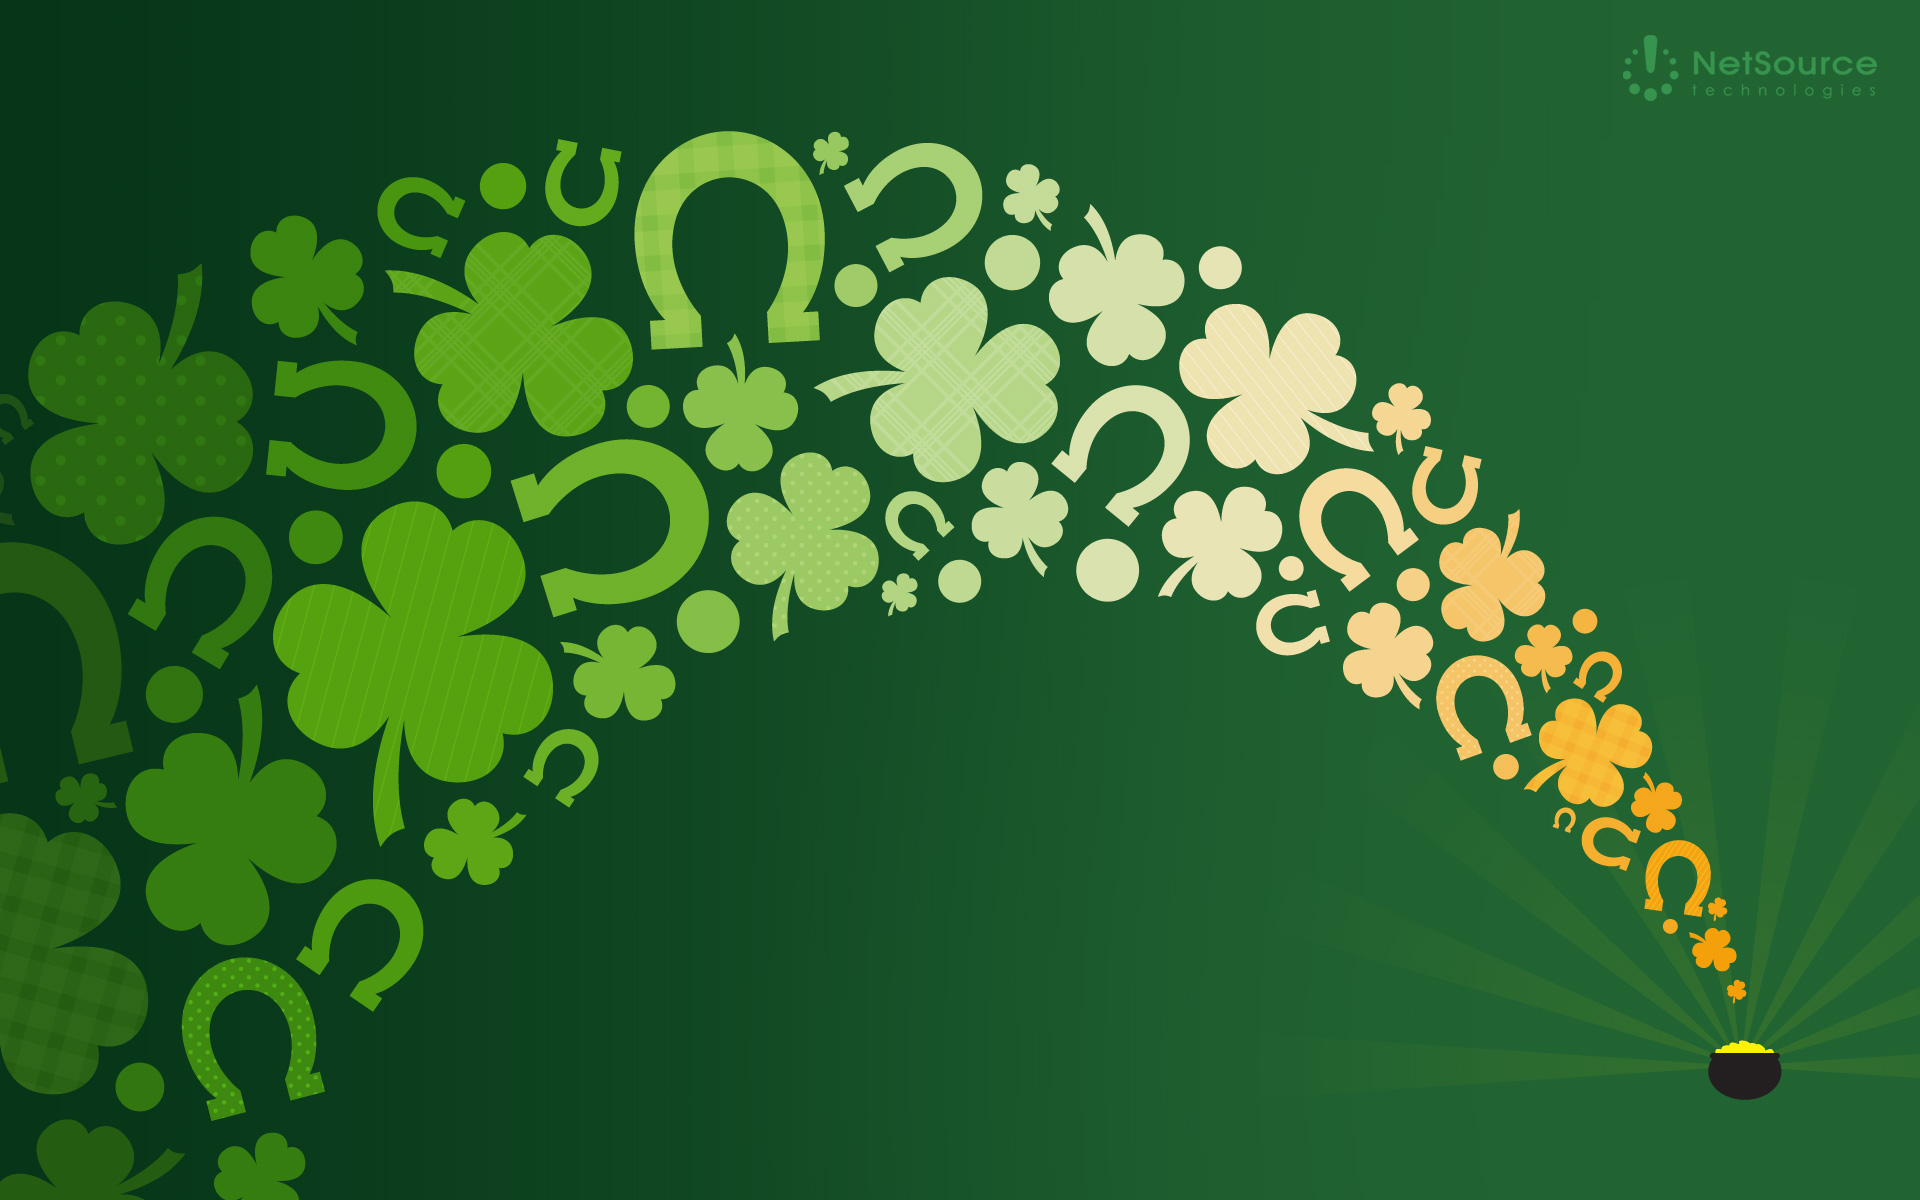 st patricks day wallpaper is all about the wallpapers which you gonna ...